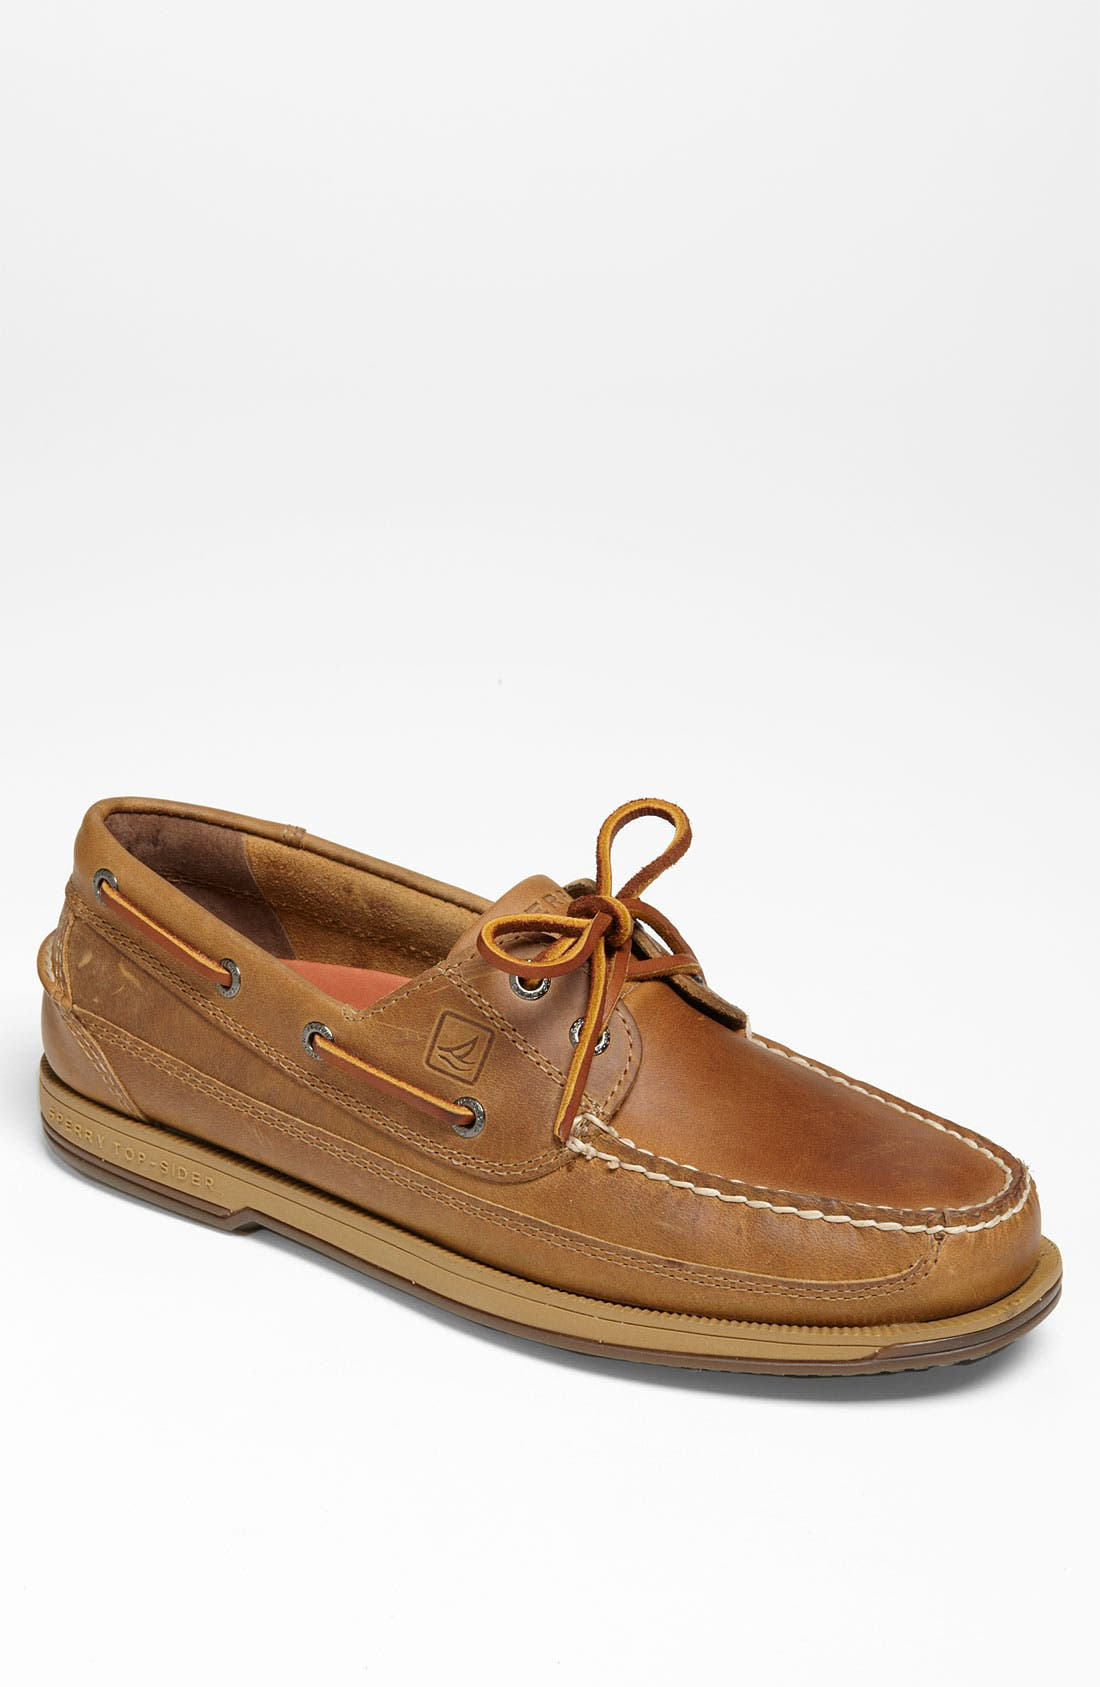 Alternate Image 1 Selected - Sperry Top-Sider® 'Mariner II' Boat Shoe